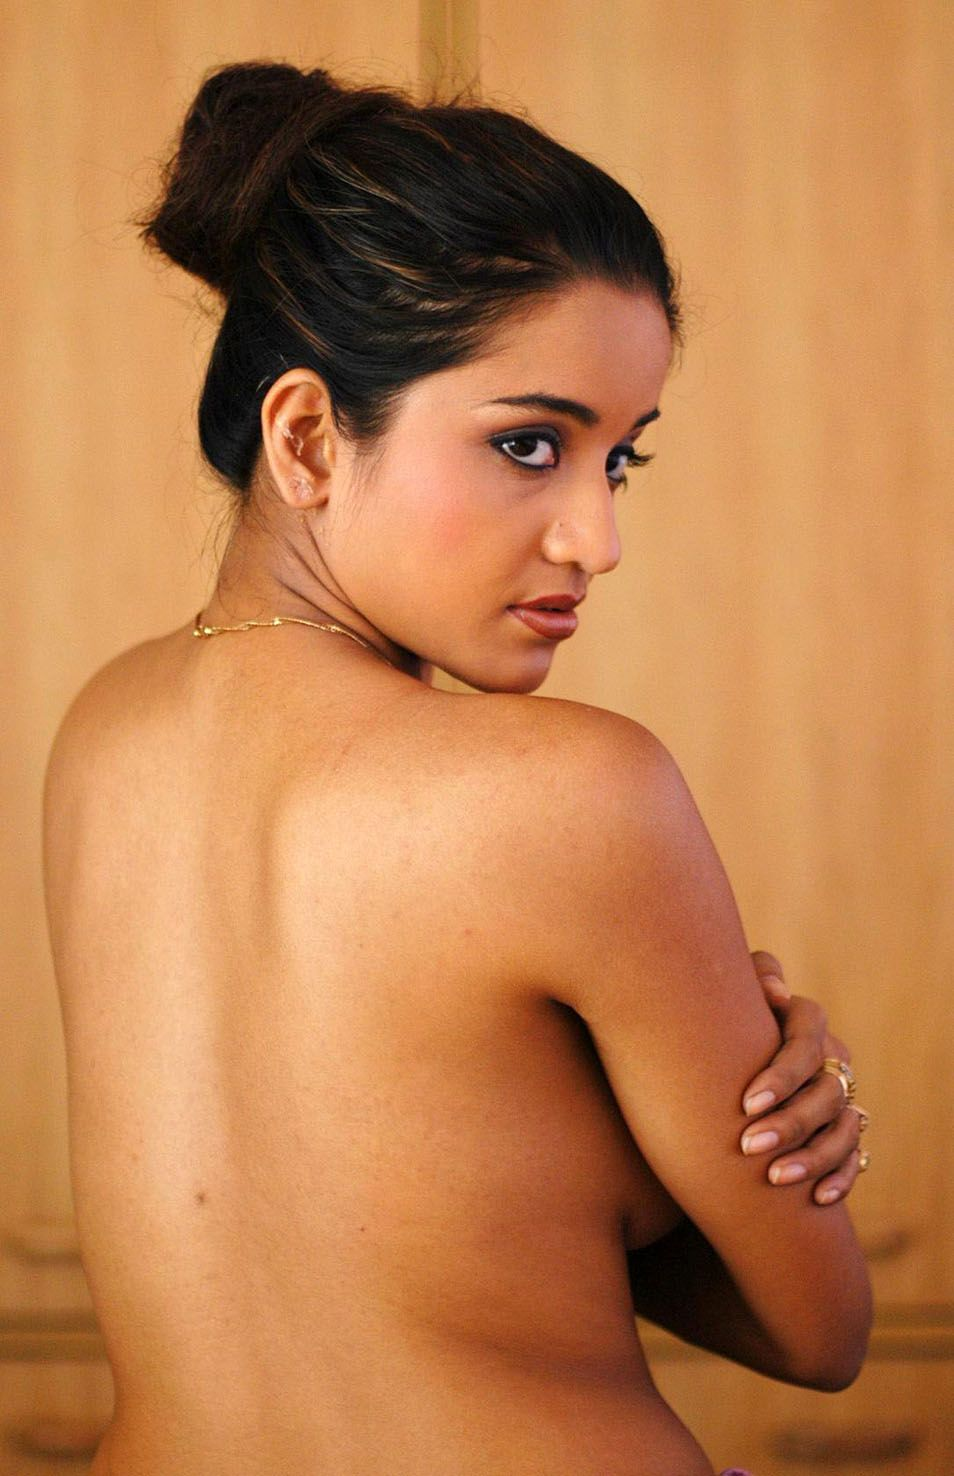 ... Kamapisachi Actors: Indian Actress Don't Wear Clothes Here! - Topless